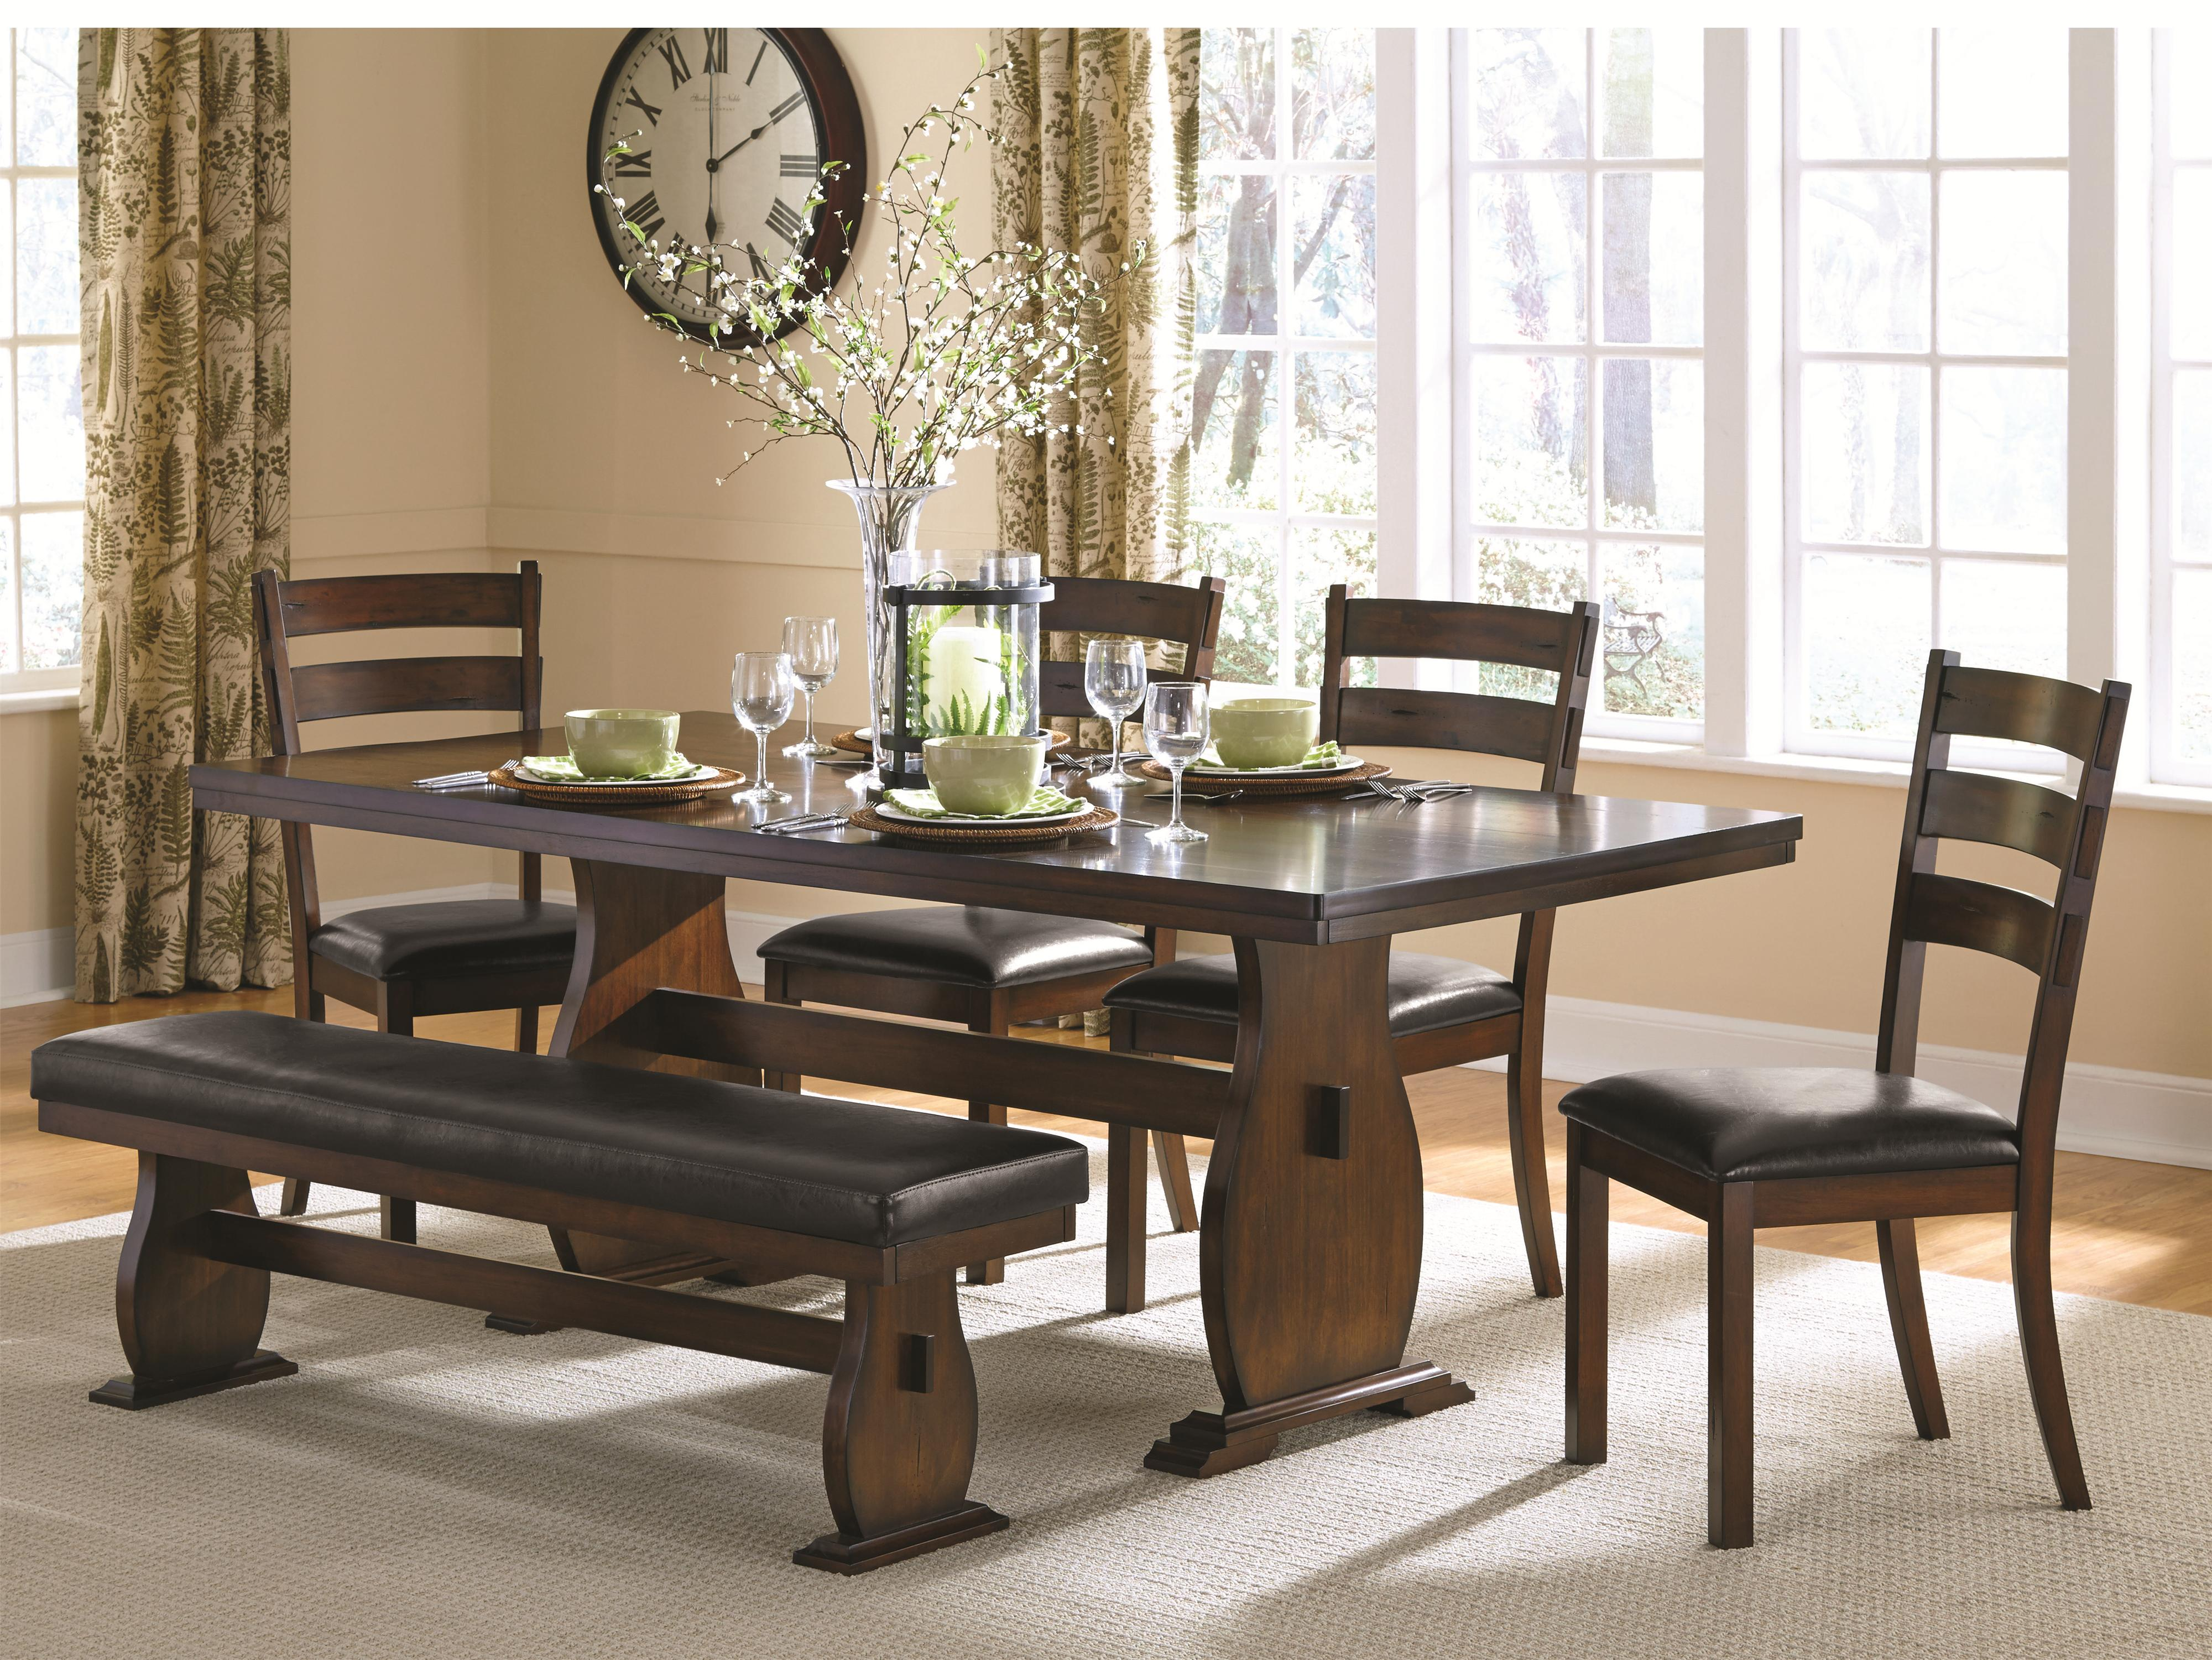 Coaster Campbell Table and Chair Set with Bench - Item Number: 105341+4x2+3